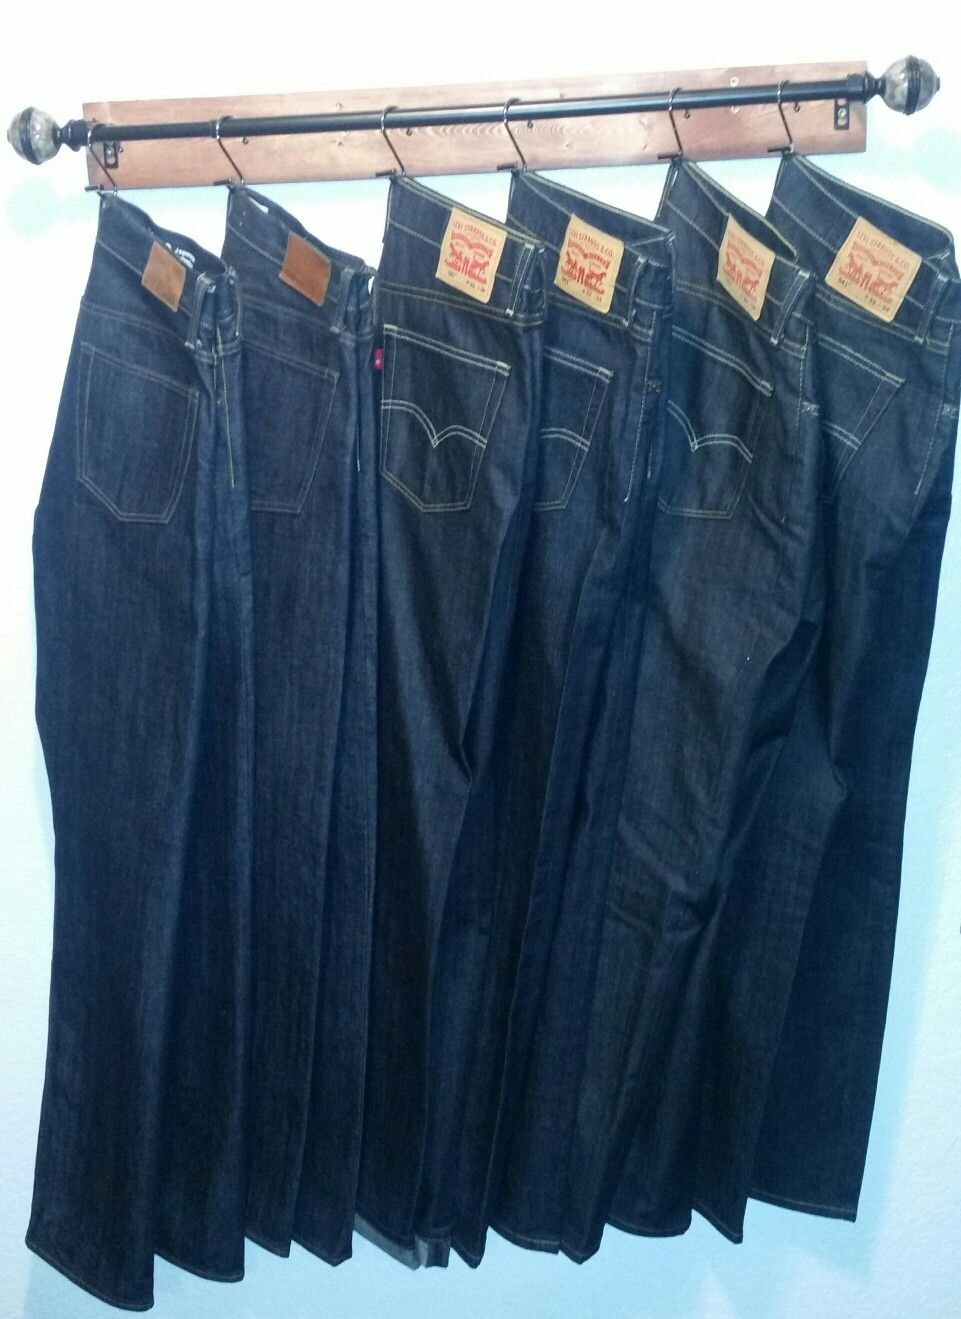 Diy Closet Jeans Hanger Keeping Your Denim Fresh And Wrinkle Free For